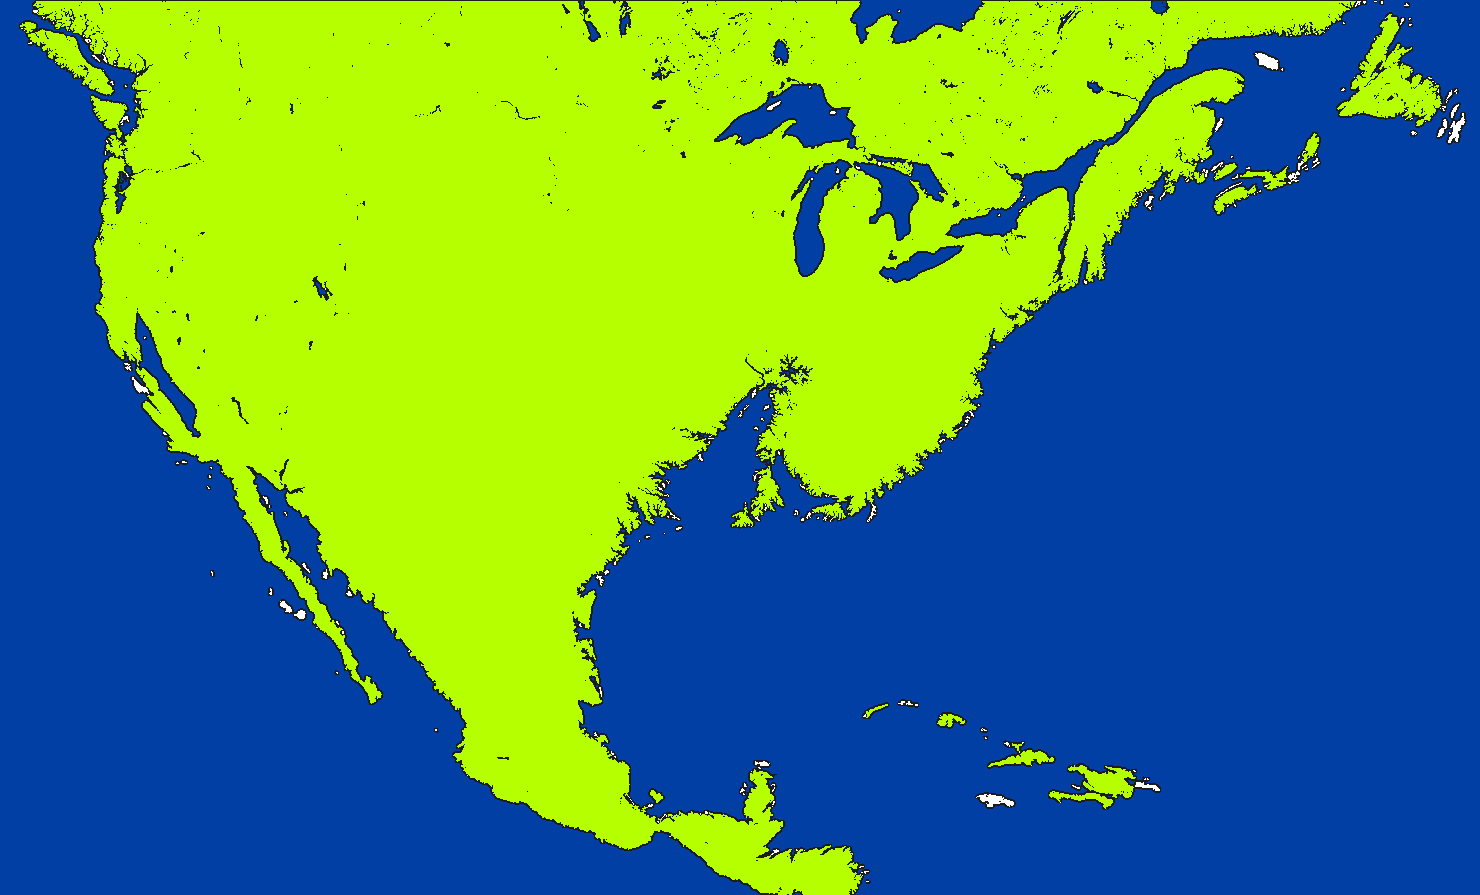 Image Coloured Blank Map Of Flooded North Americapng - North america map blank